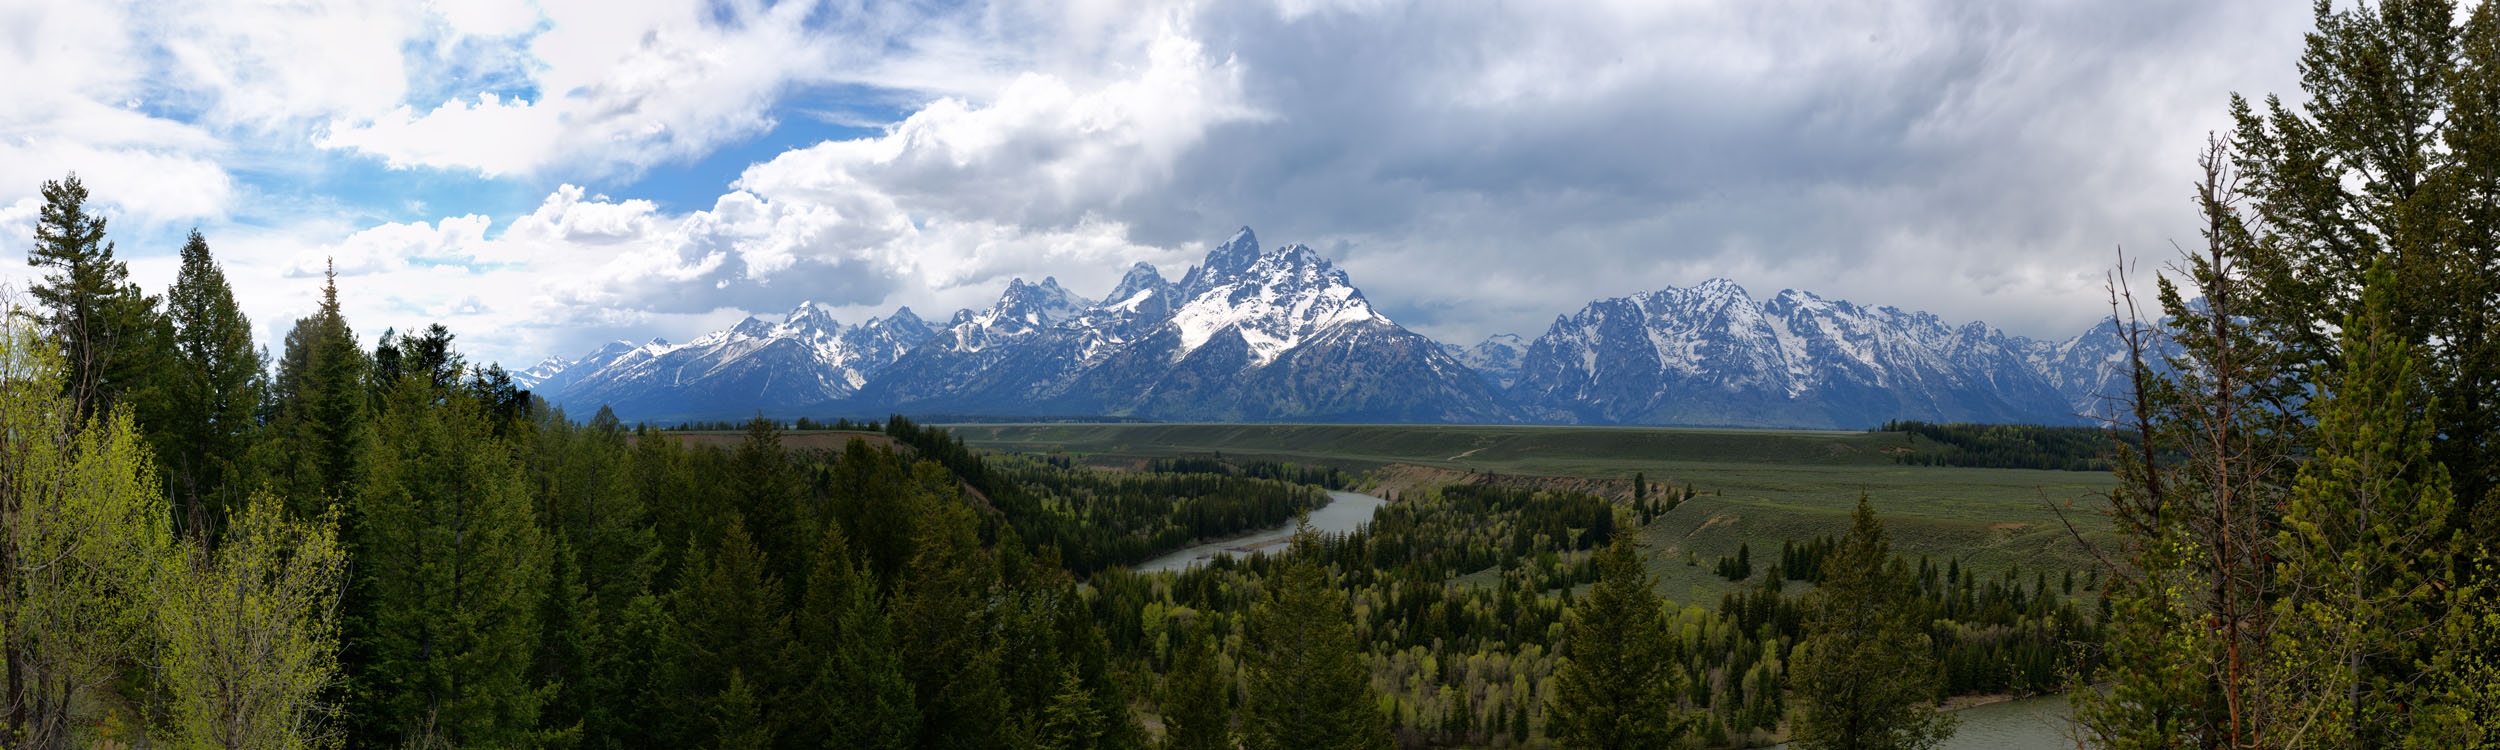 Snake River and the Teton Range